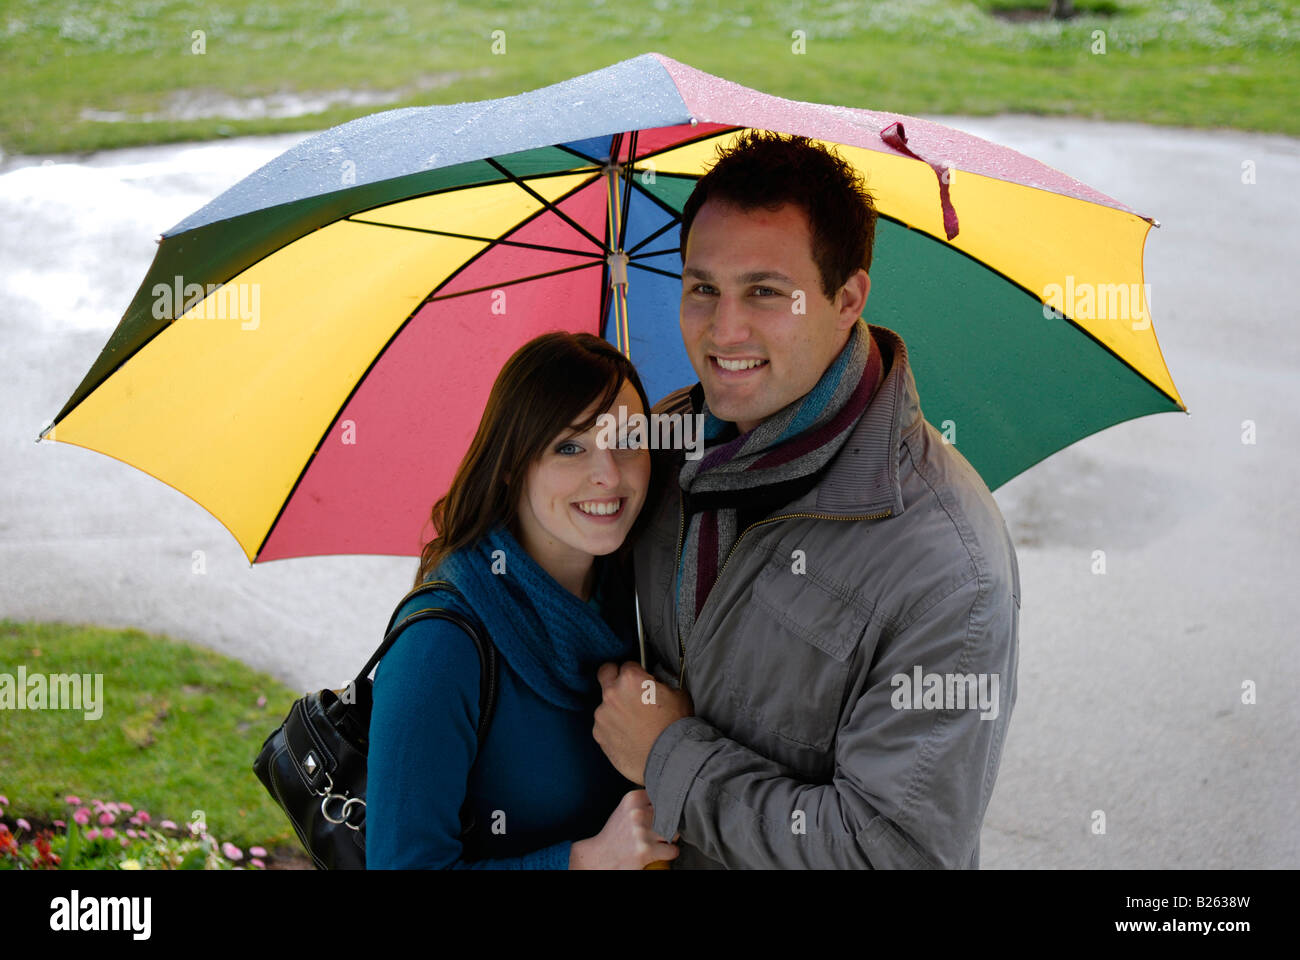 A happy young couple shelter form the rain under a large umbrella - Stock Image